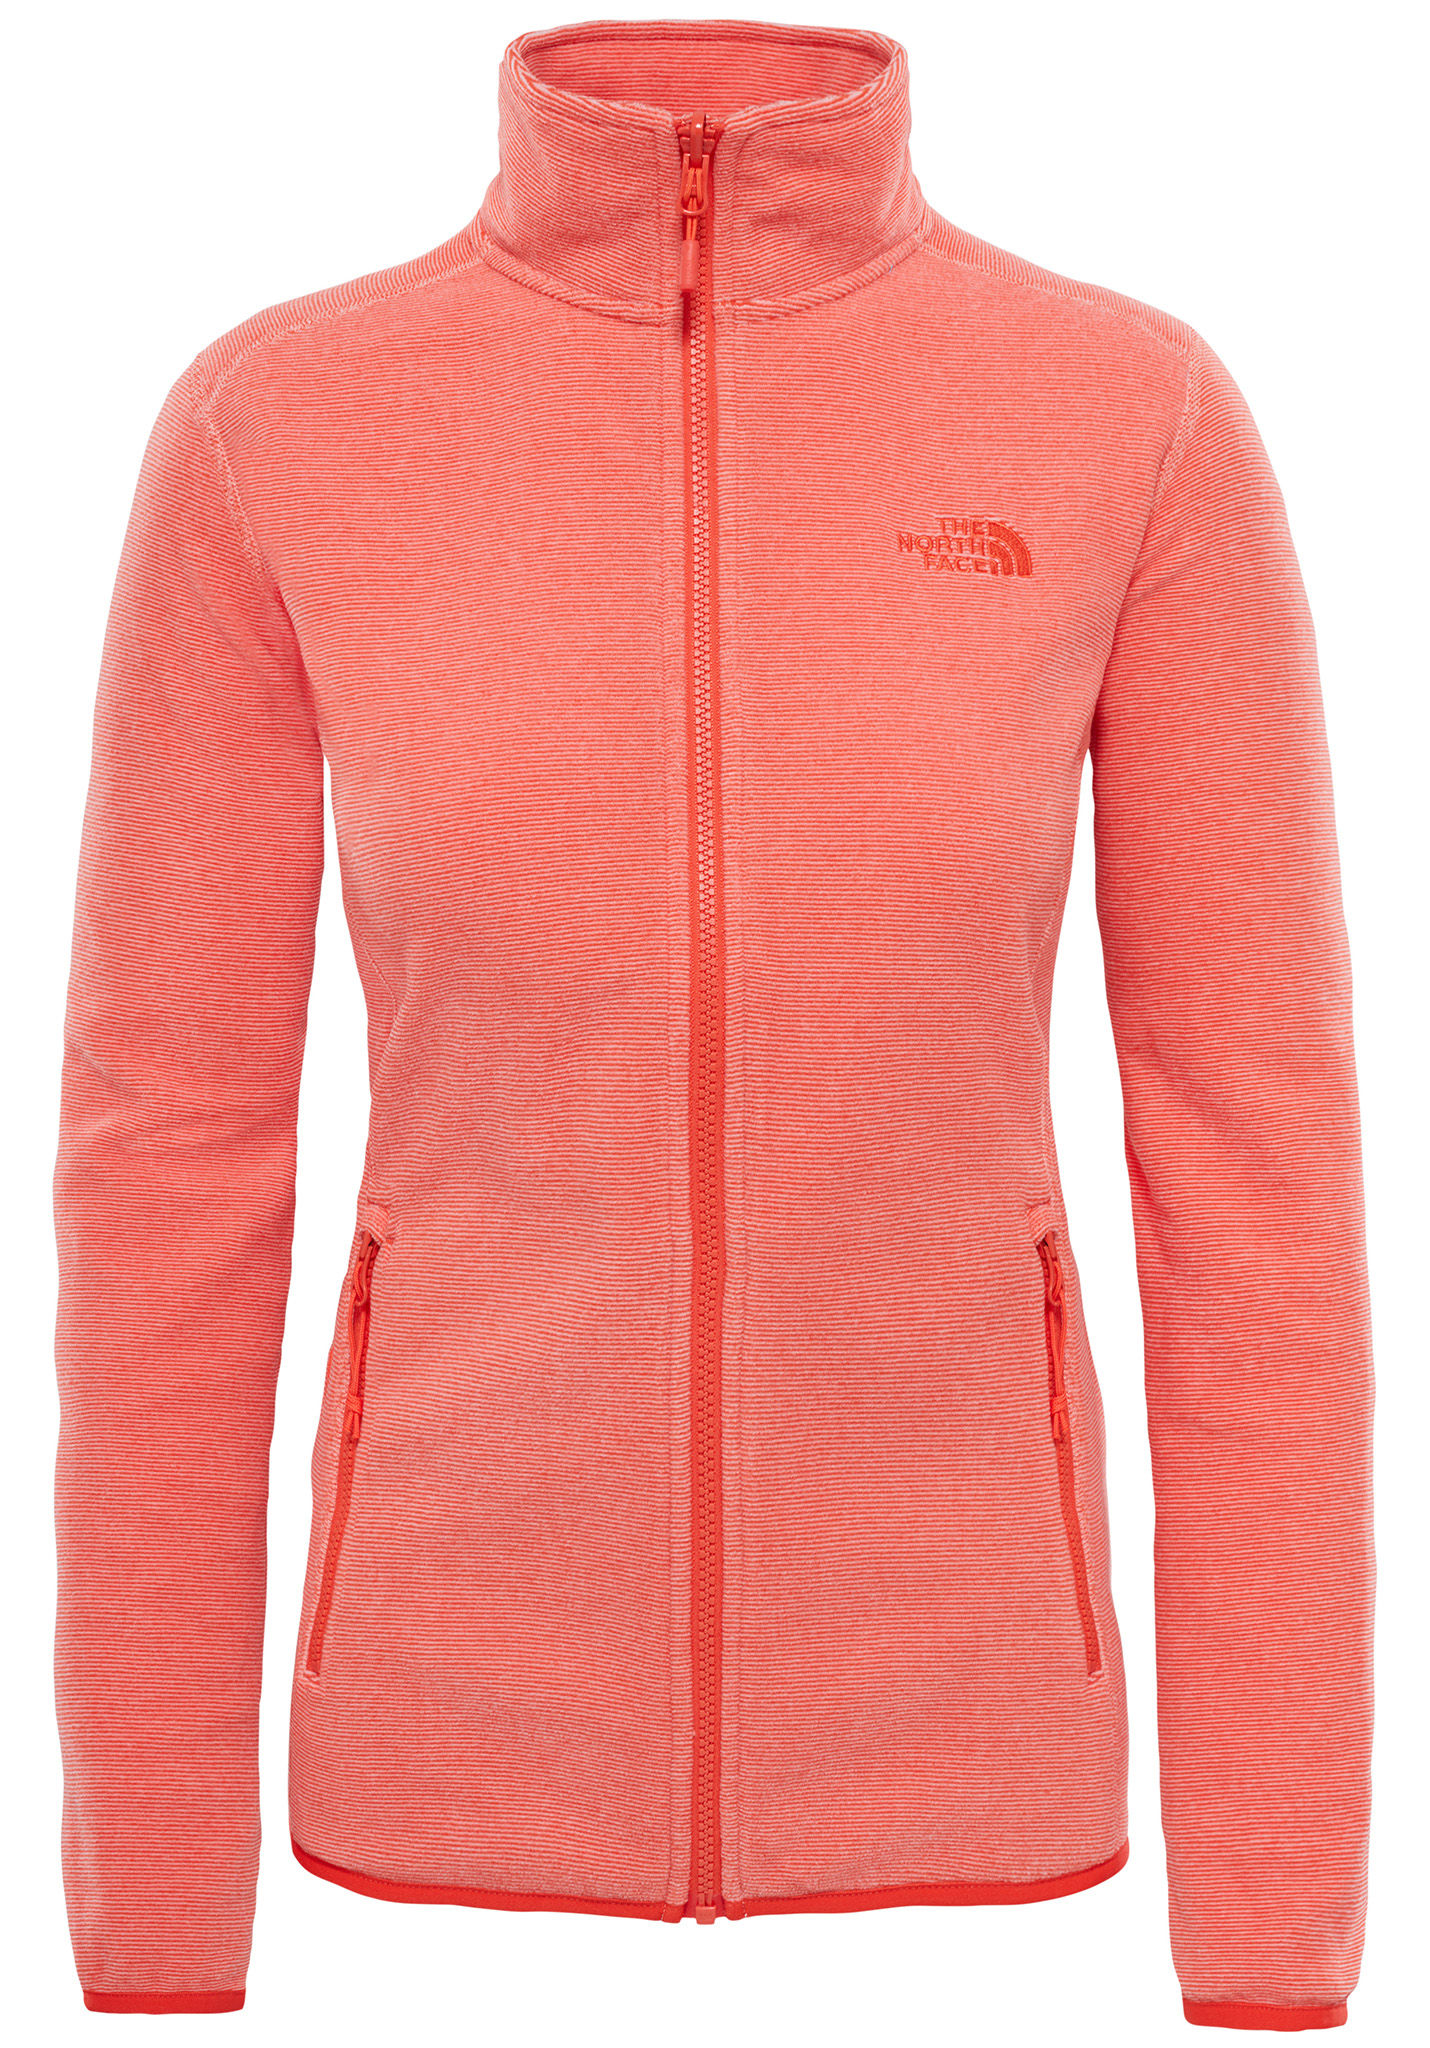 5091e33a80 THE NORTH FACE 100 Glacier - Veste polaire pour Femme - Orange - Planet  Sports